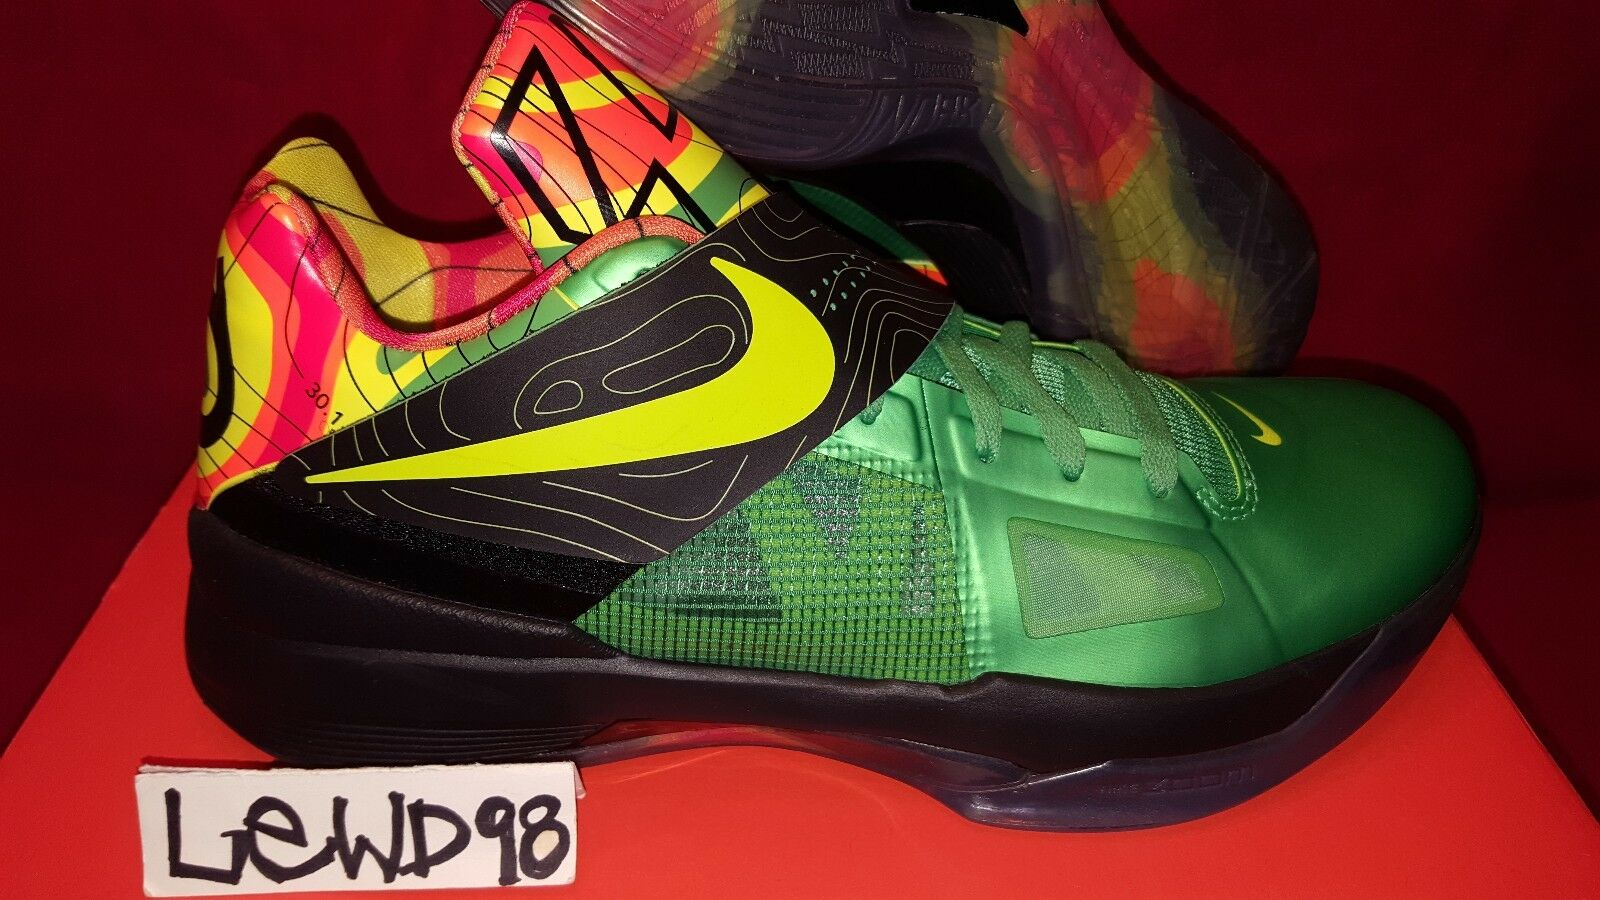 NIKE KD 4 WEATHERMAN 12 usa nerf bhm eybl texas yotd galaxy aunt pearl xmas iv New shoes for men and women, limited time discount